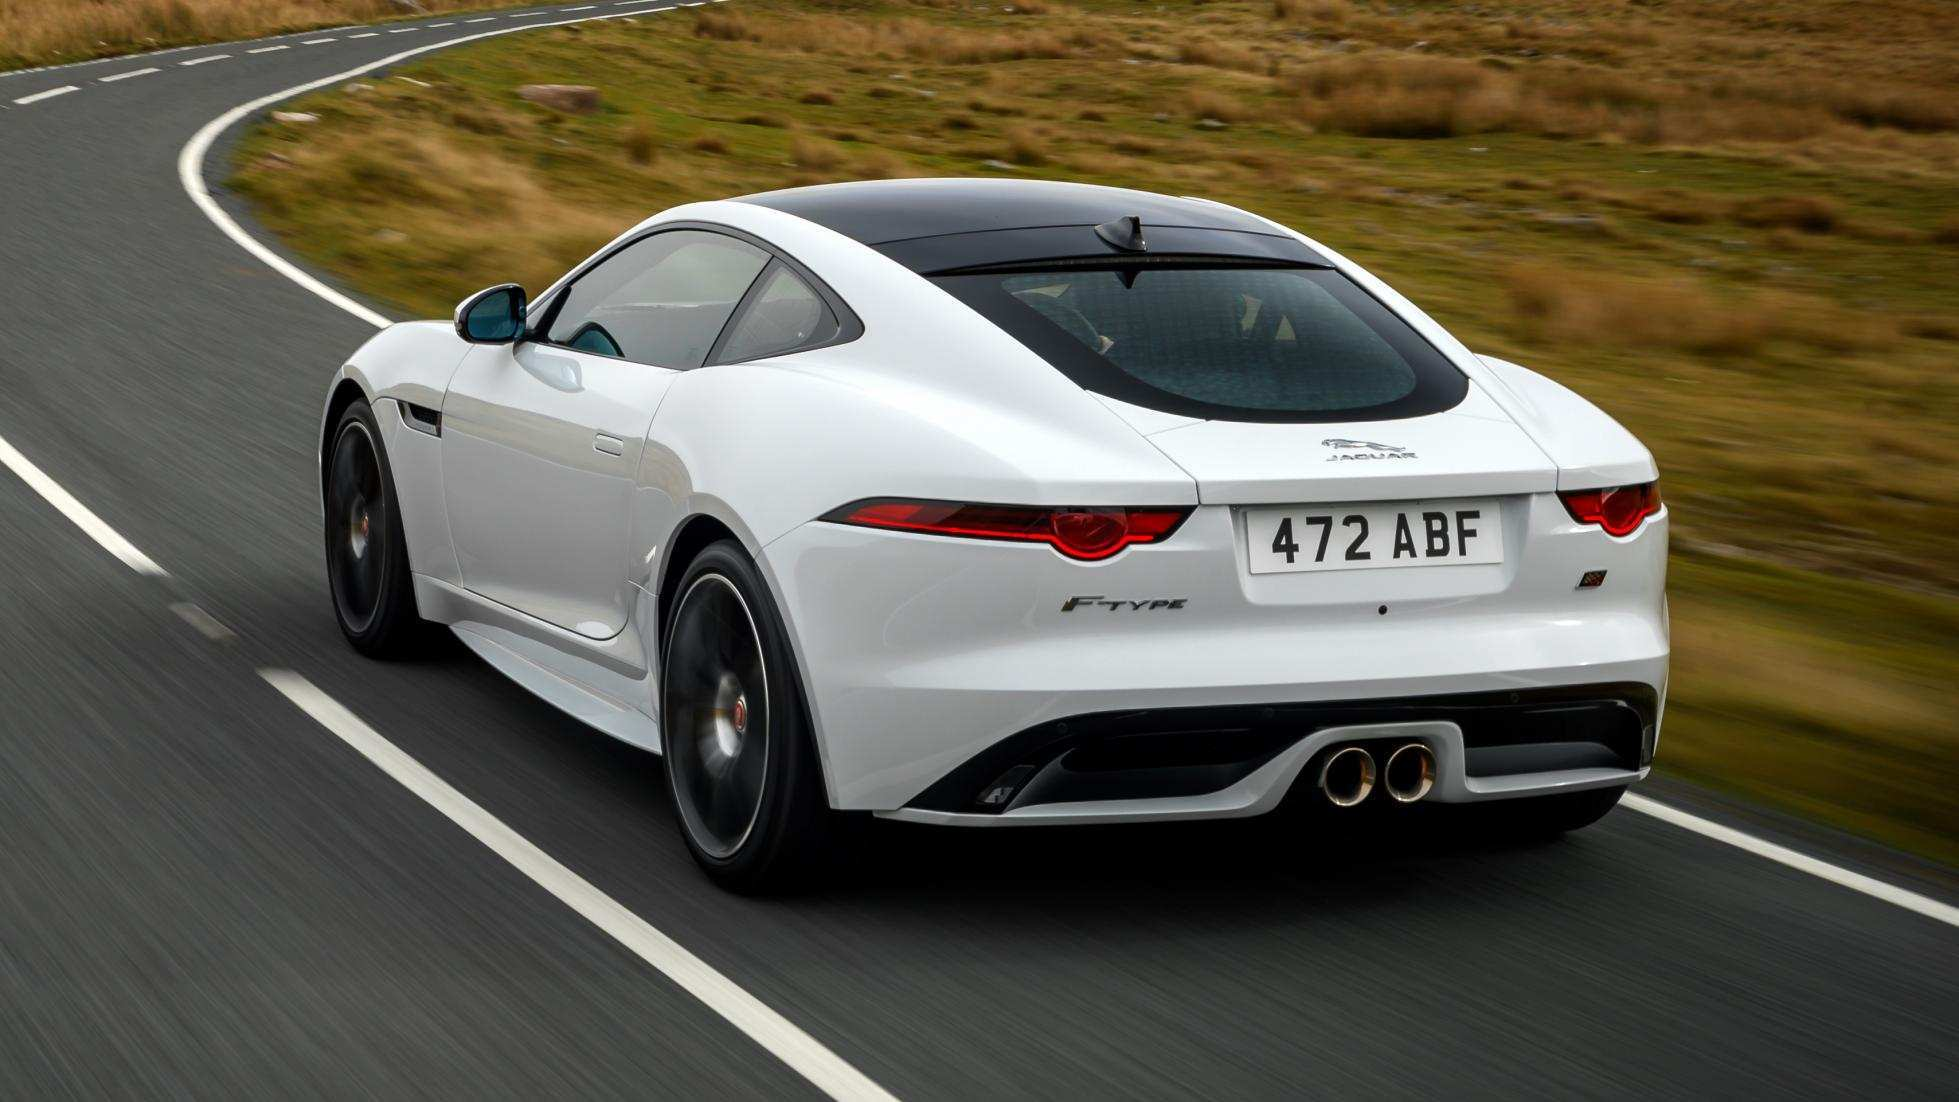 83 All New Jaguar F Type 2020 New Concept Release by Jaguar F Type 2020 New Concept